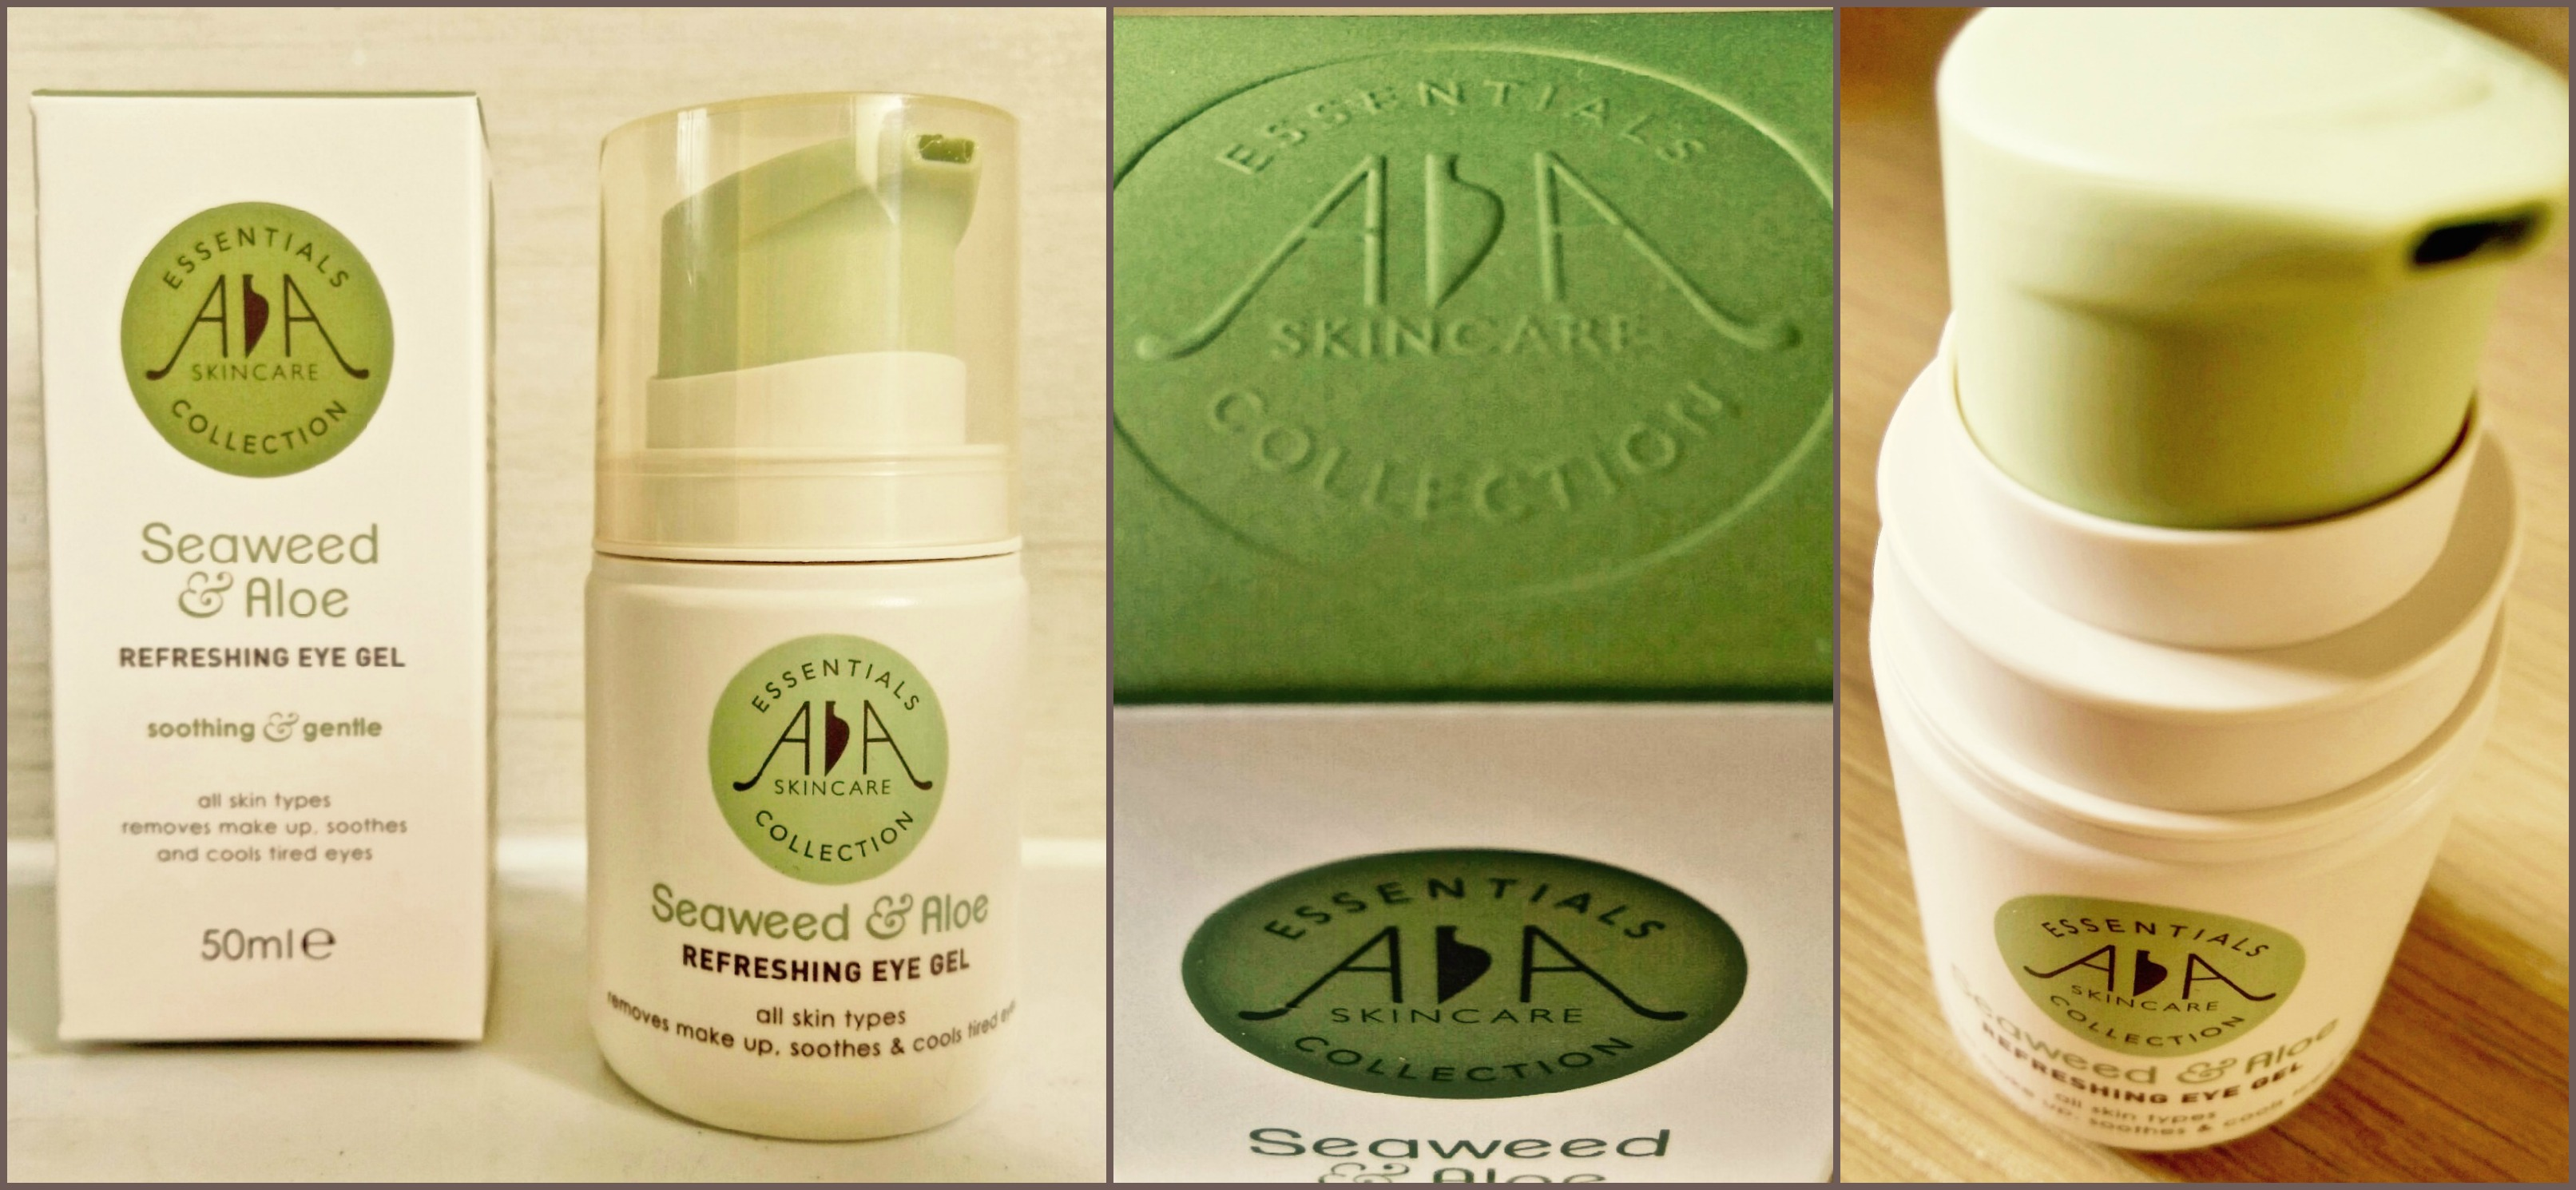 Aloe Vera Essen Beauty Aa Skincare Seaweed Aloe Refreshing Eye Gel Review